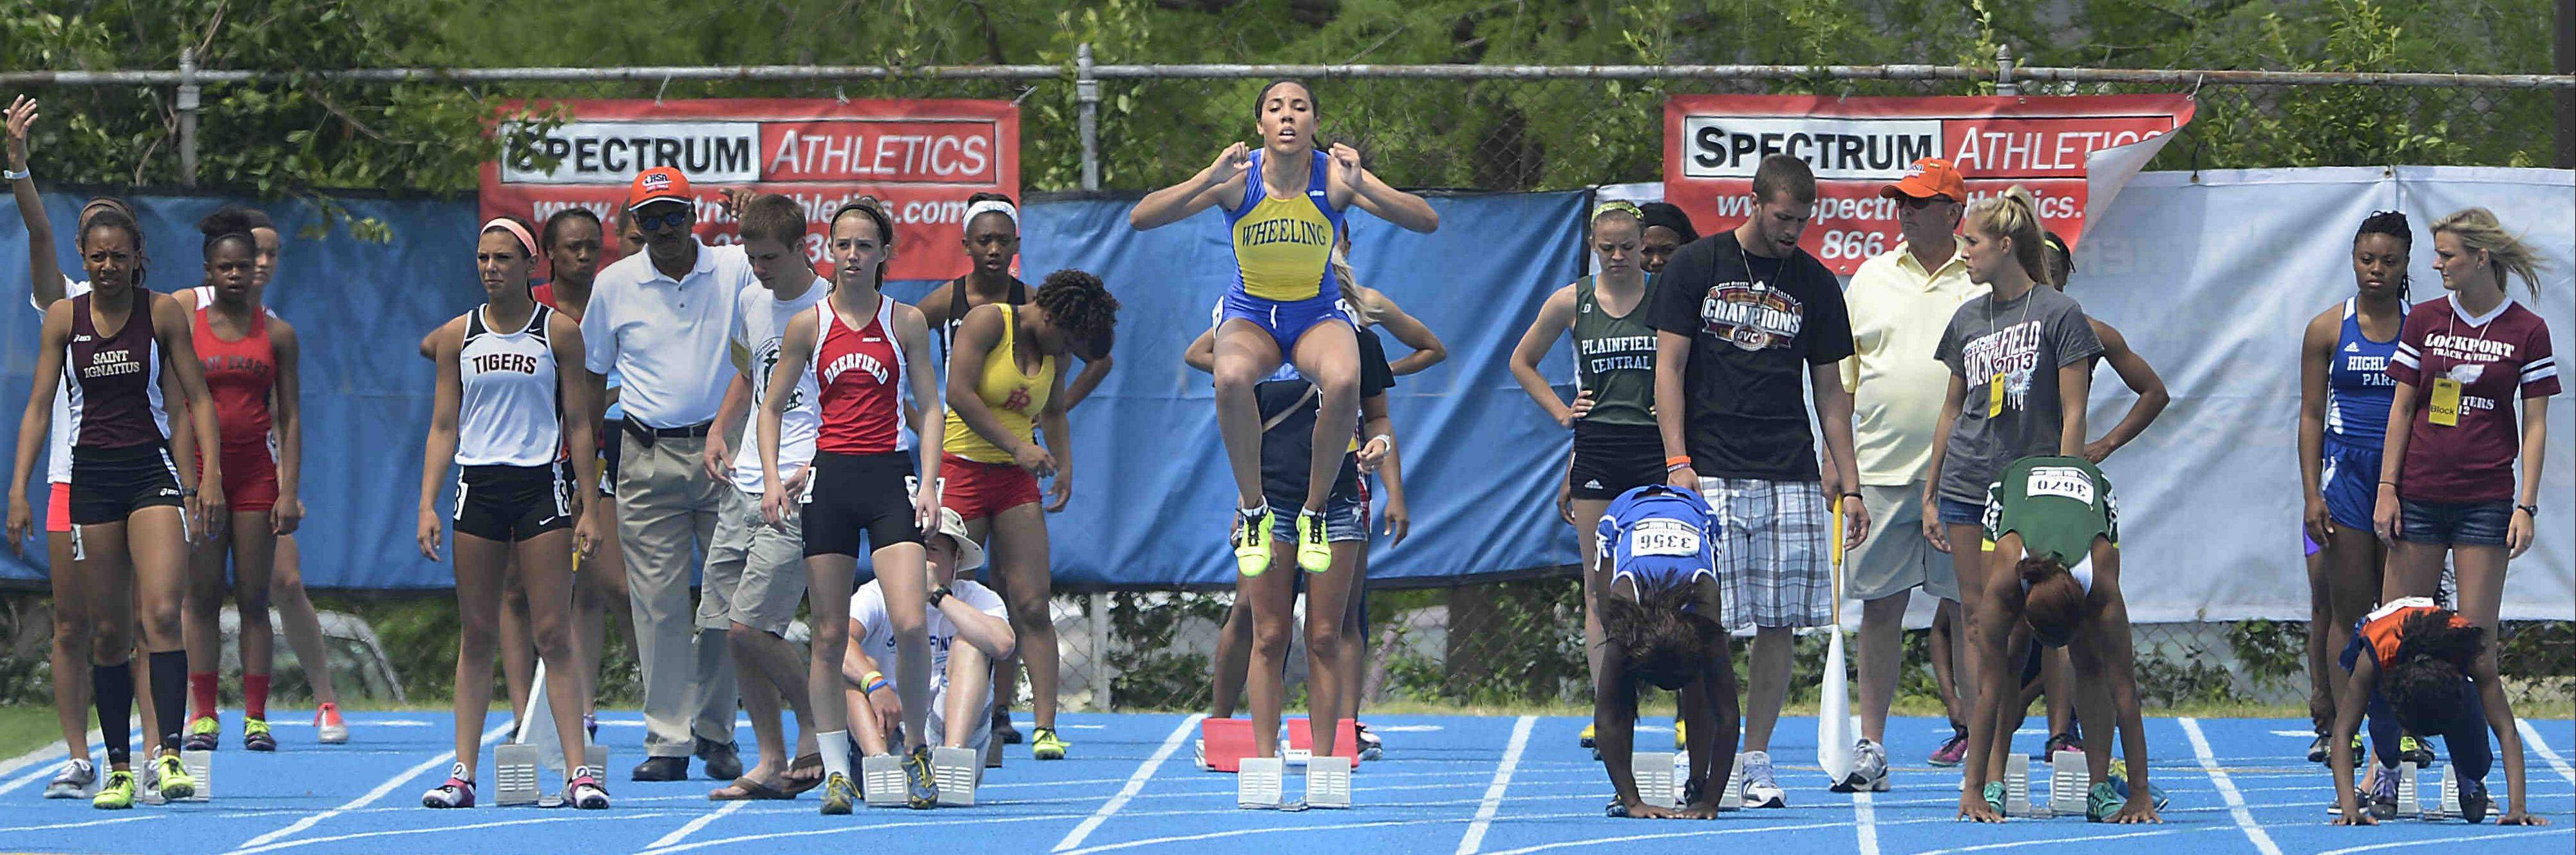 As the other competitors step into their starting blocks for the 100-meter dash, Wheeling's Sydney Keith jumps up Friday at the Class 3A girls state track and field preliminaries at Eastern Illinois University.